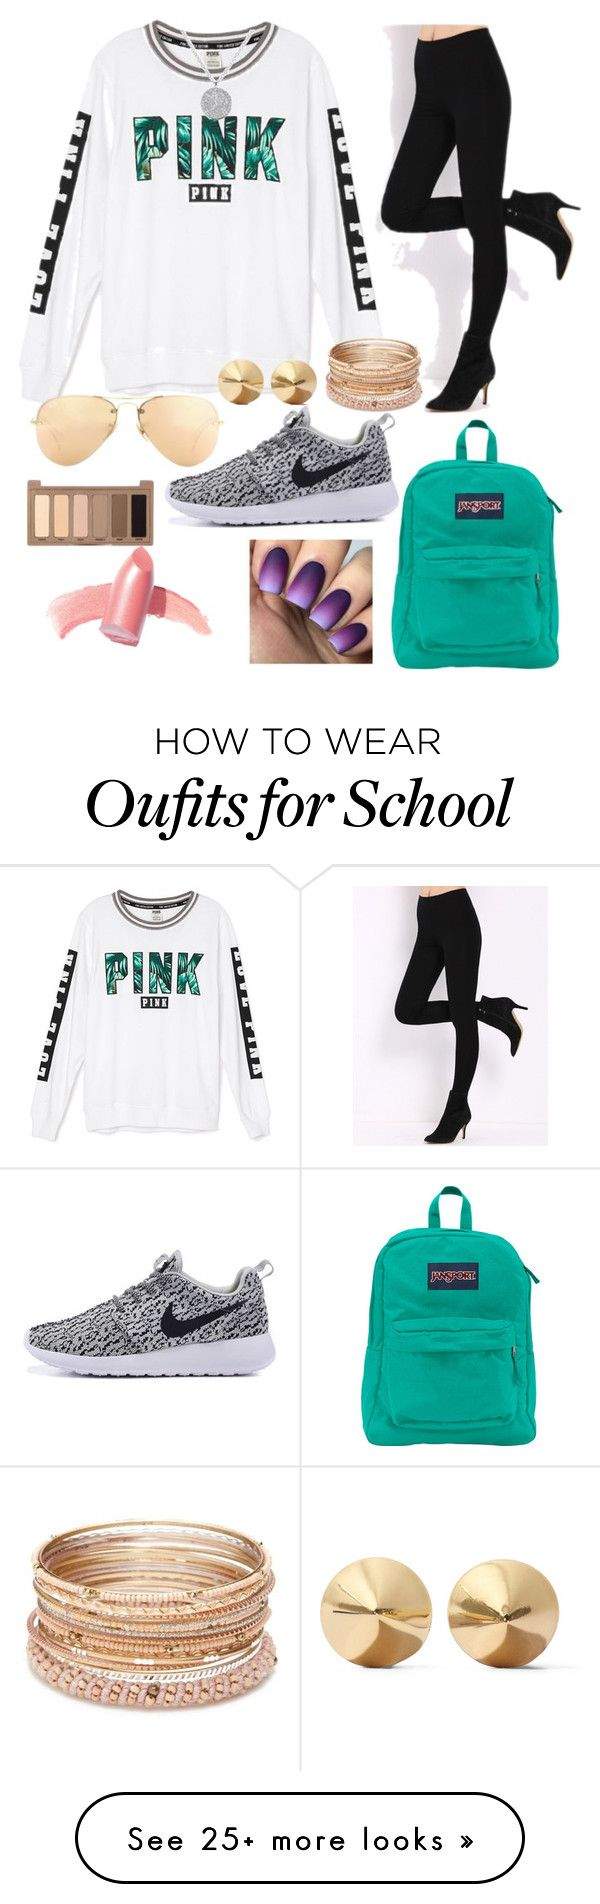 """""""Styling School"""" by sunglassesforstyle on Polyvore featuring Victoria's Secret, JanSport, Ray-Ban, Elizabeth Arden, Urban Decay, Red Camel and Eddie Borgo"""